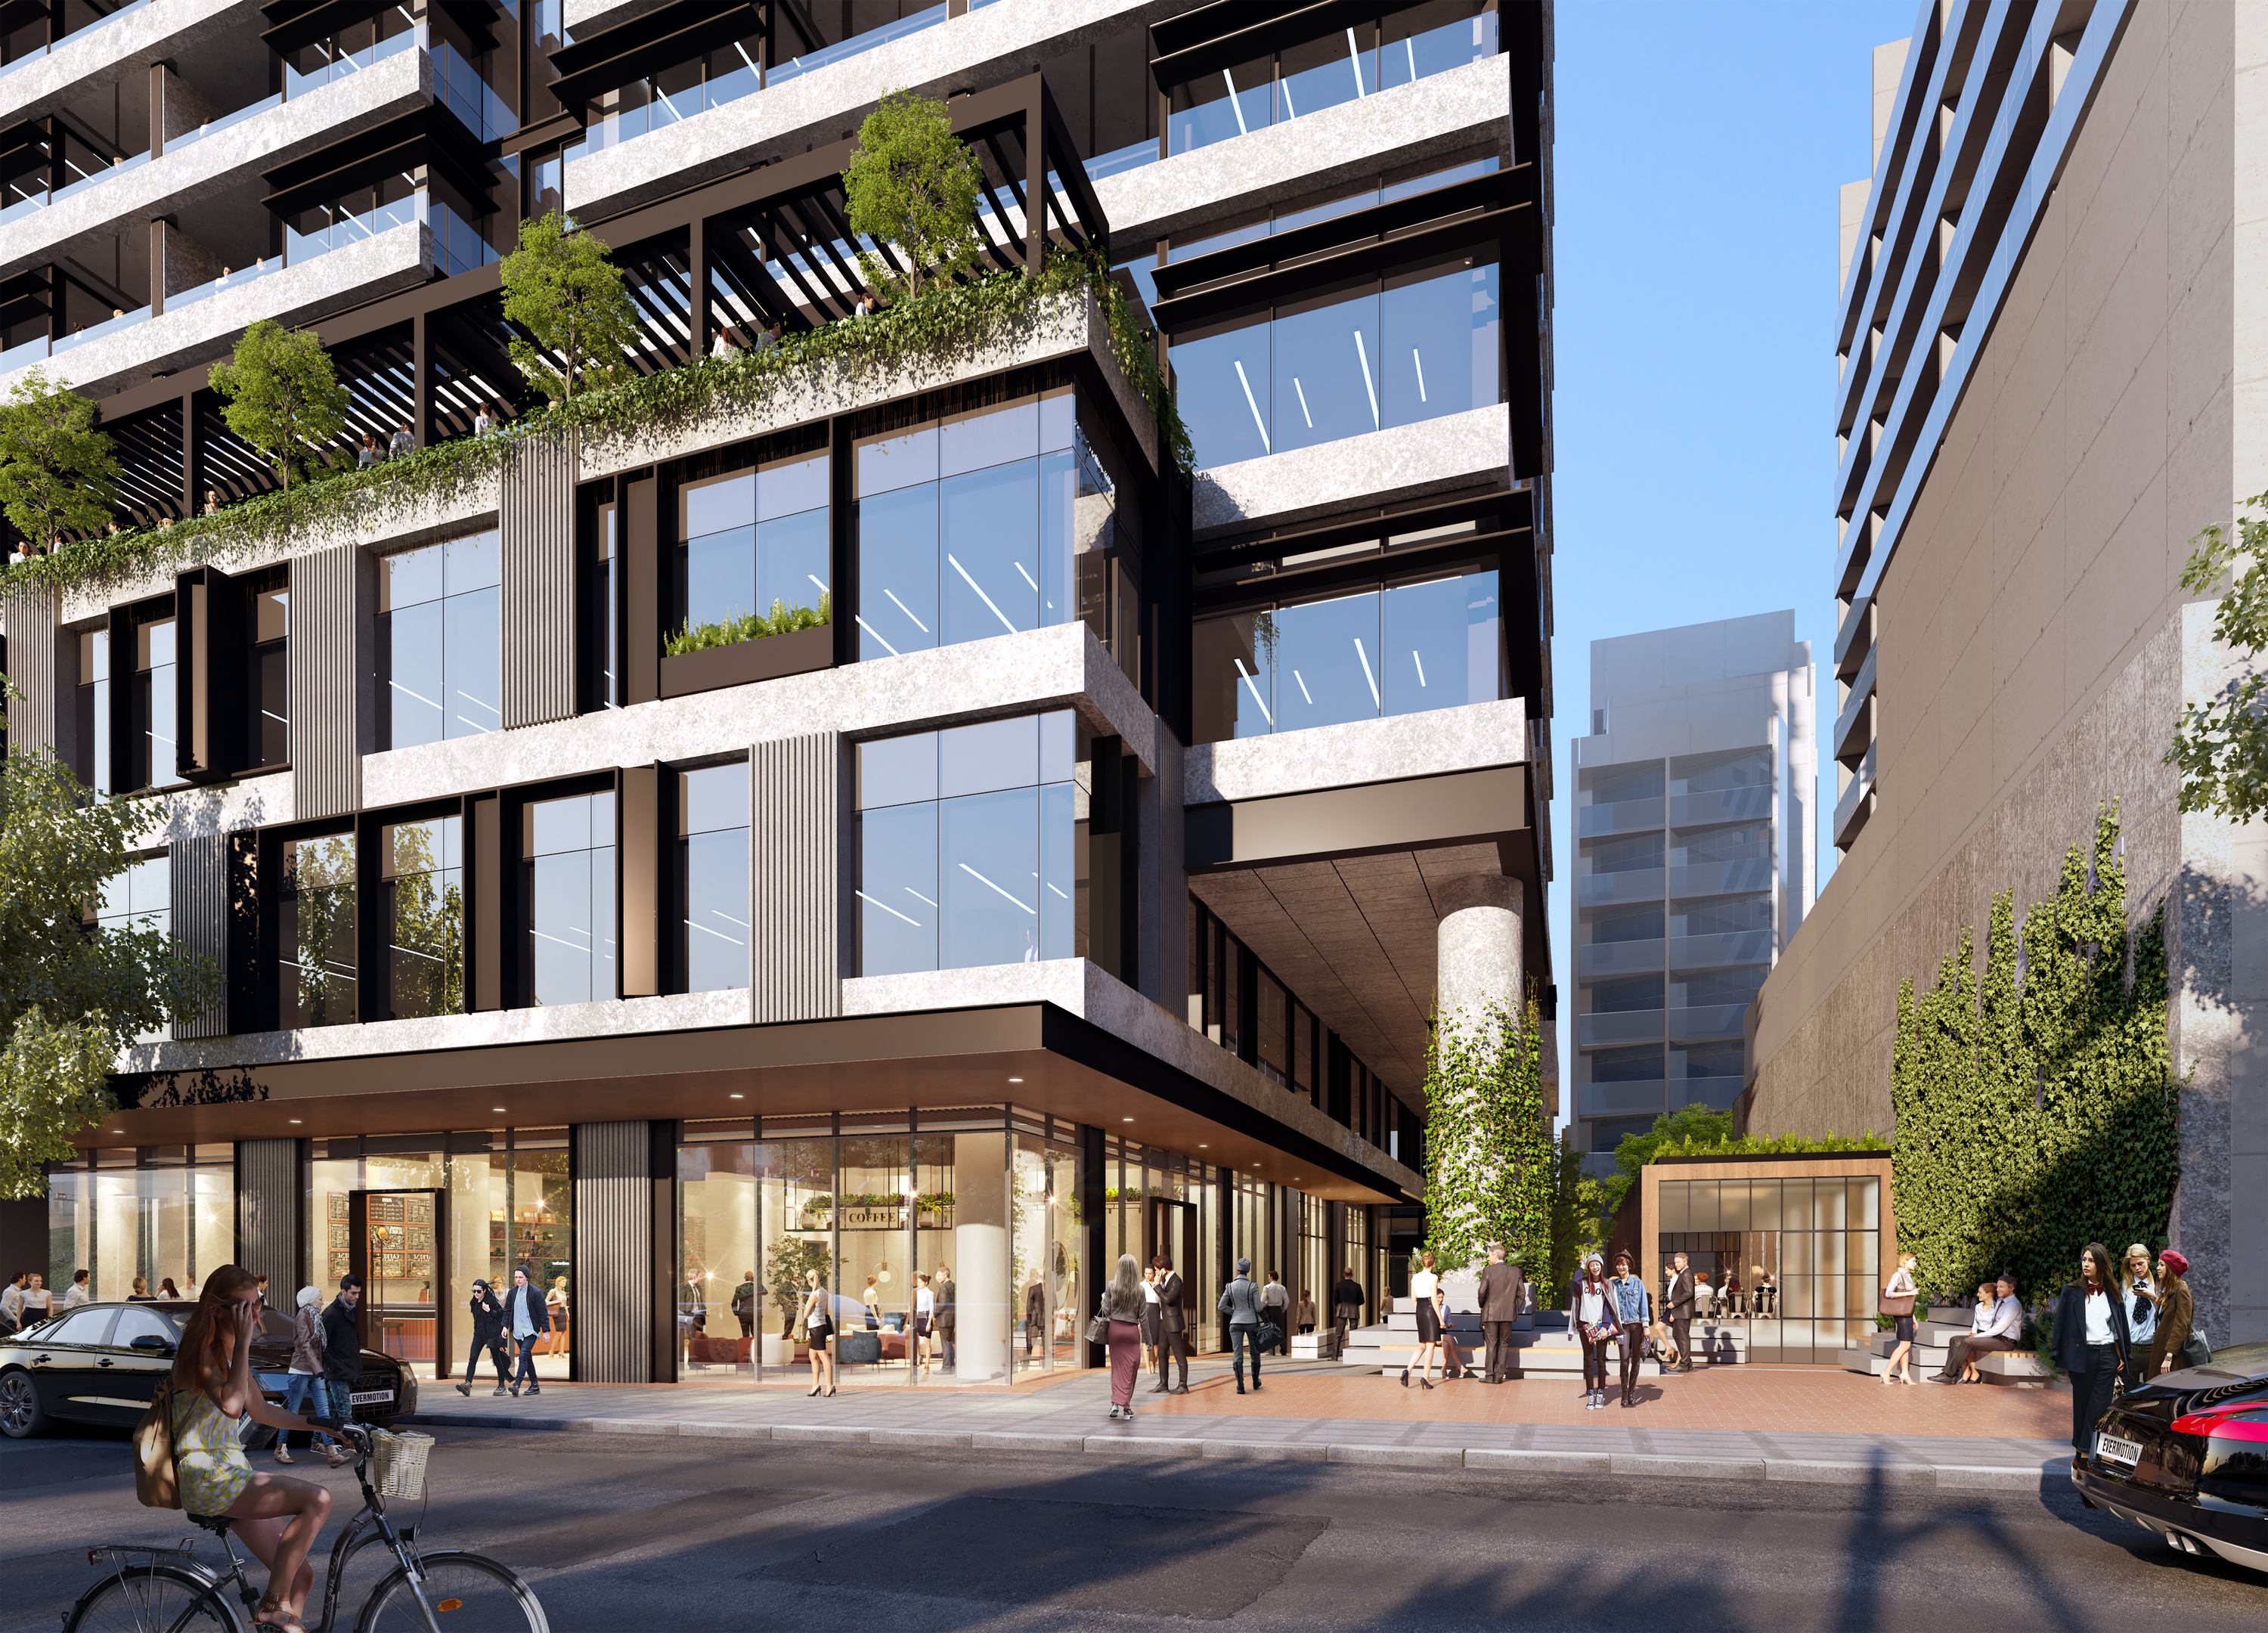 The approval will give rise to the construction of around 625 housing units in inner Melbourne's South Yarra.